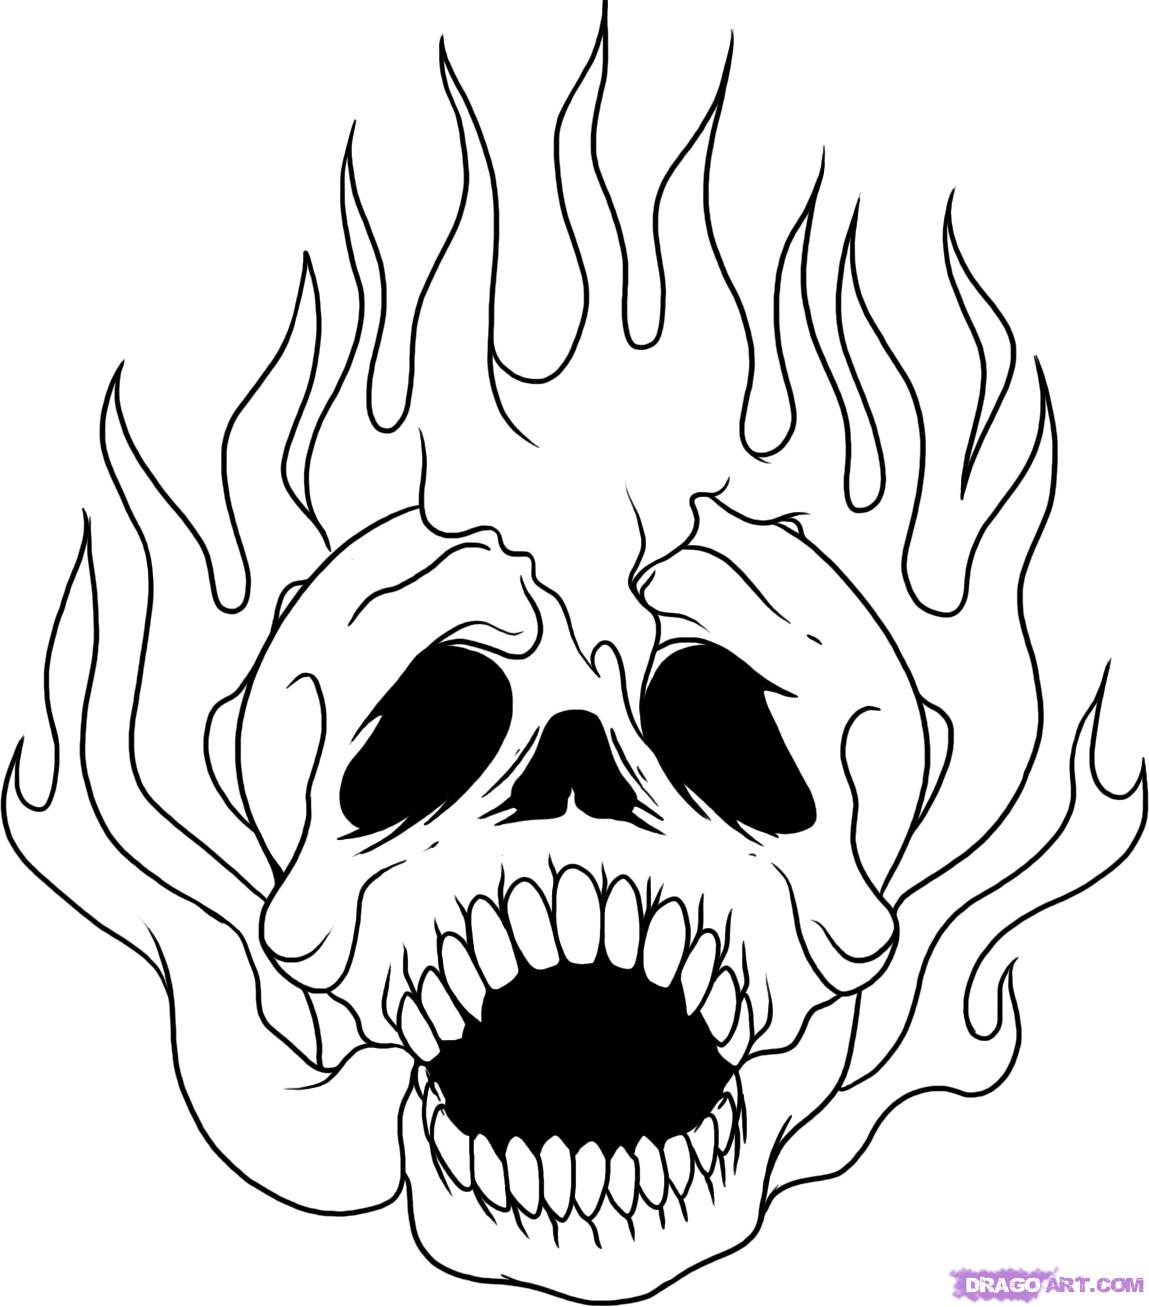 1149x1307 Skull On Fire Drawing How To Draw A Skull On Fire, Step By Step